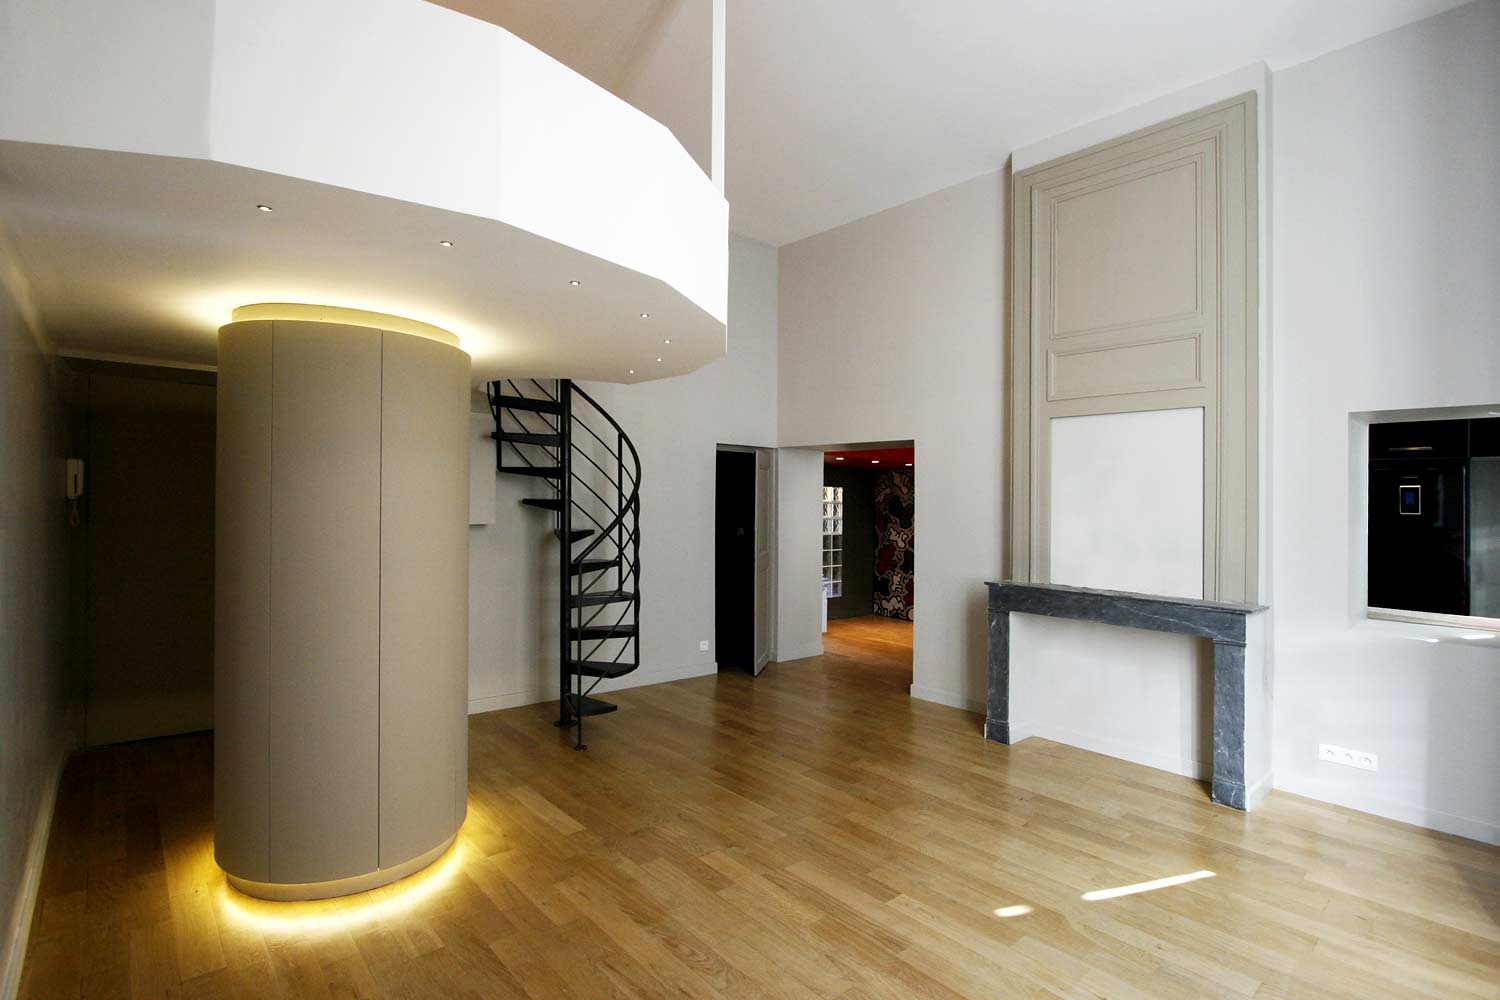 Trouver un appartement en location à Toulouse sur internet